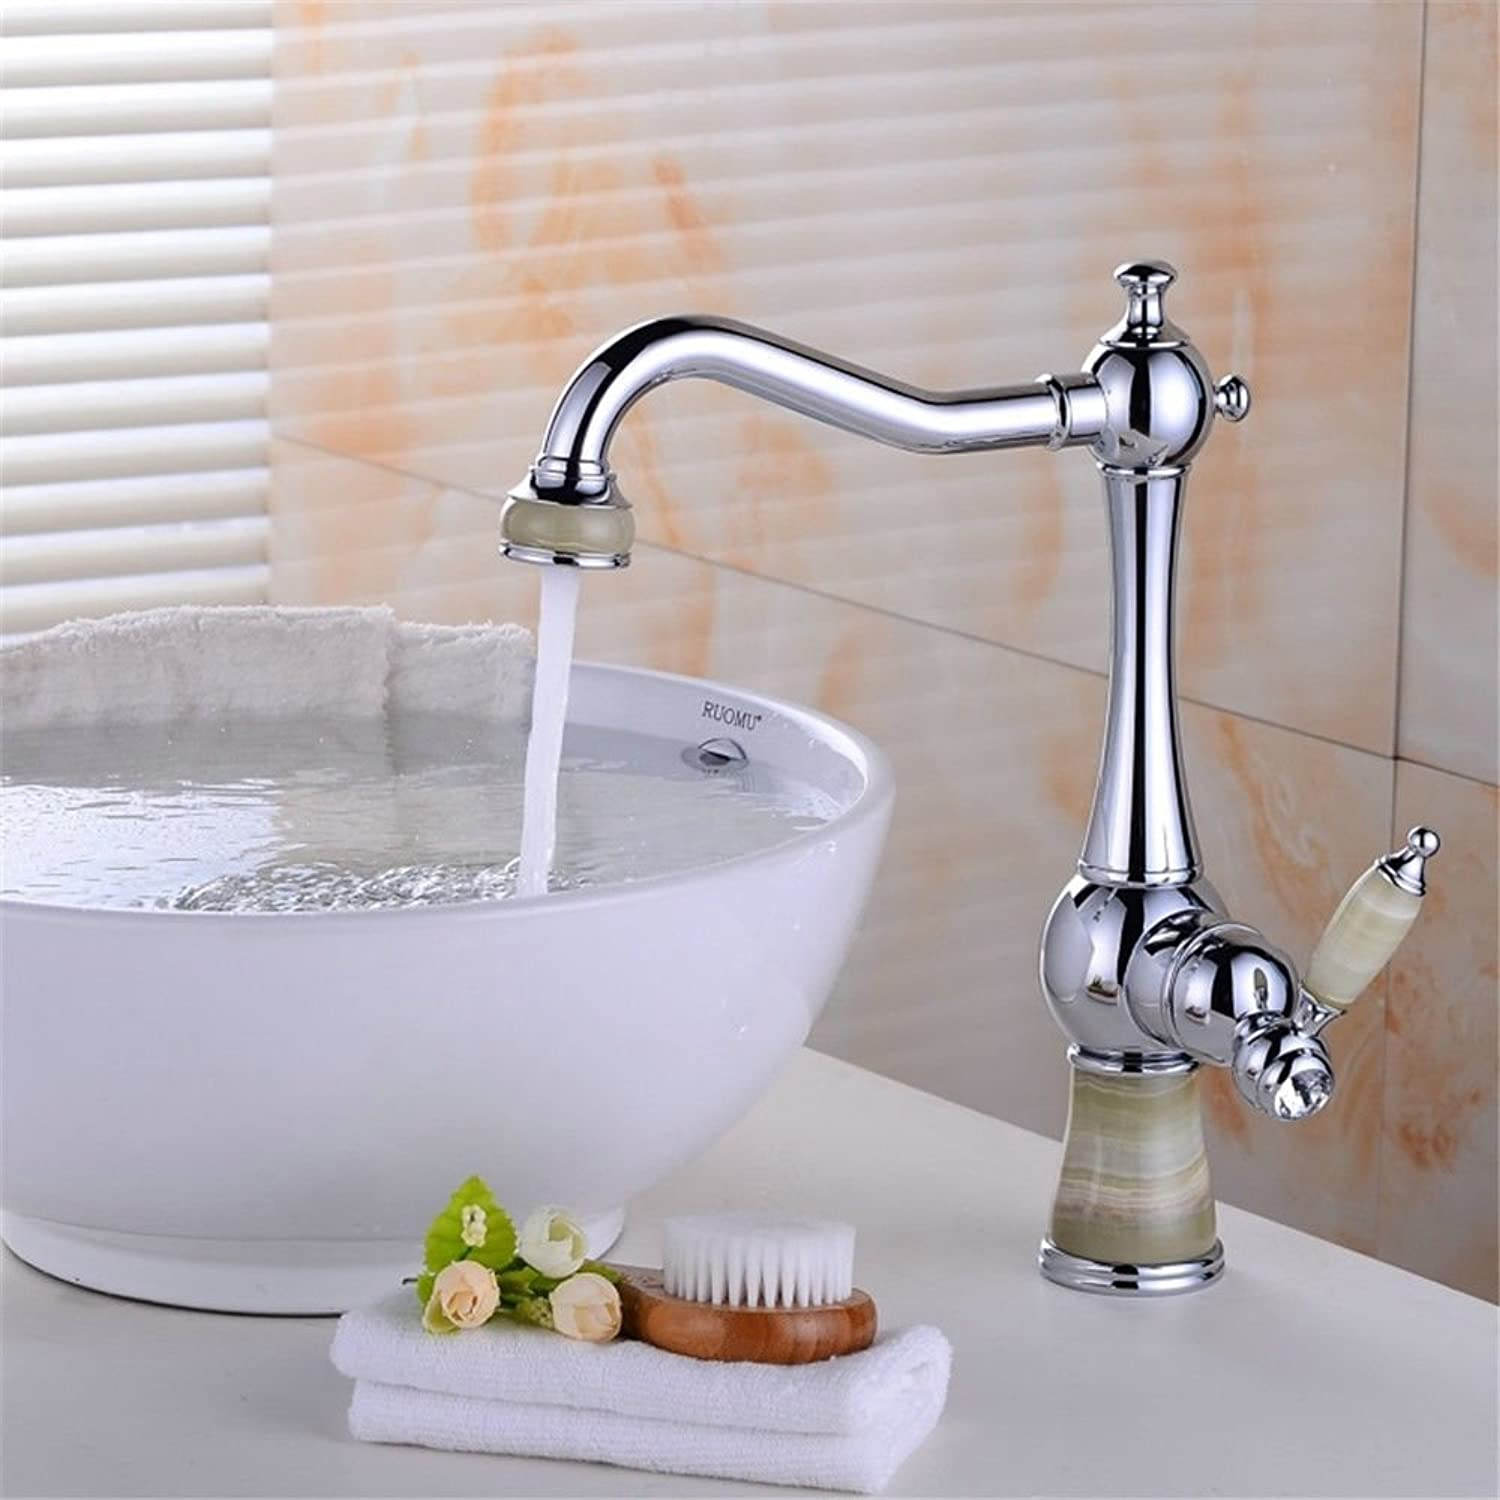 Commercial Single Lever Pull Down Kitchen Sink Faucet Brass Constructed Polished Kitchen Faucet Copper European Retro Hot and Cold Water Wash Basin Wash Basin Laundry Pool redary Sink Faucet